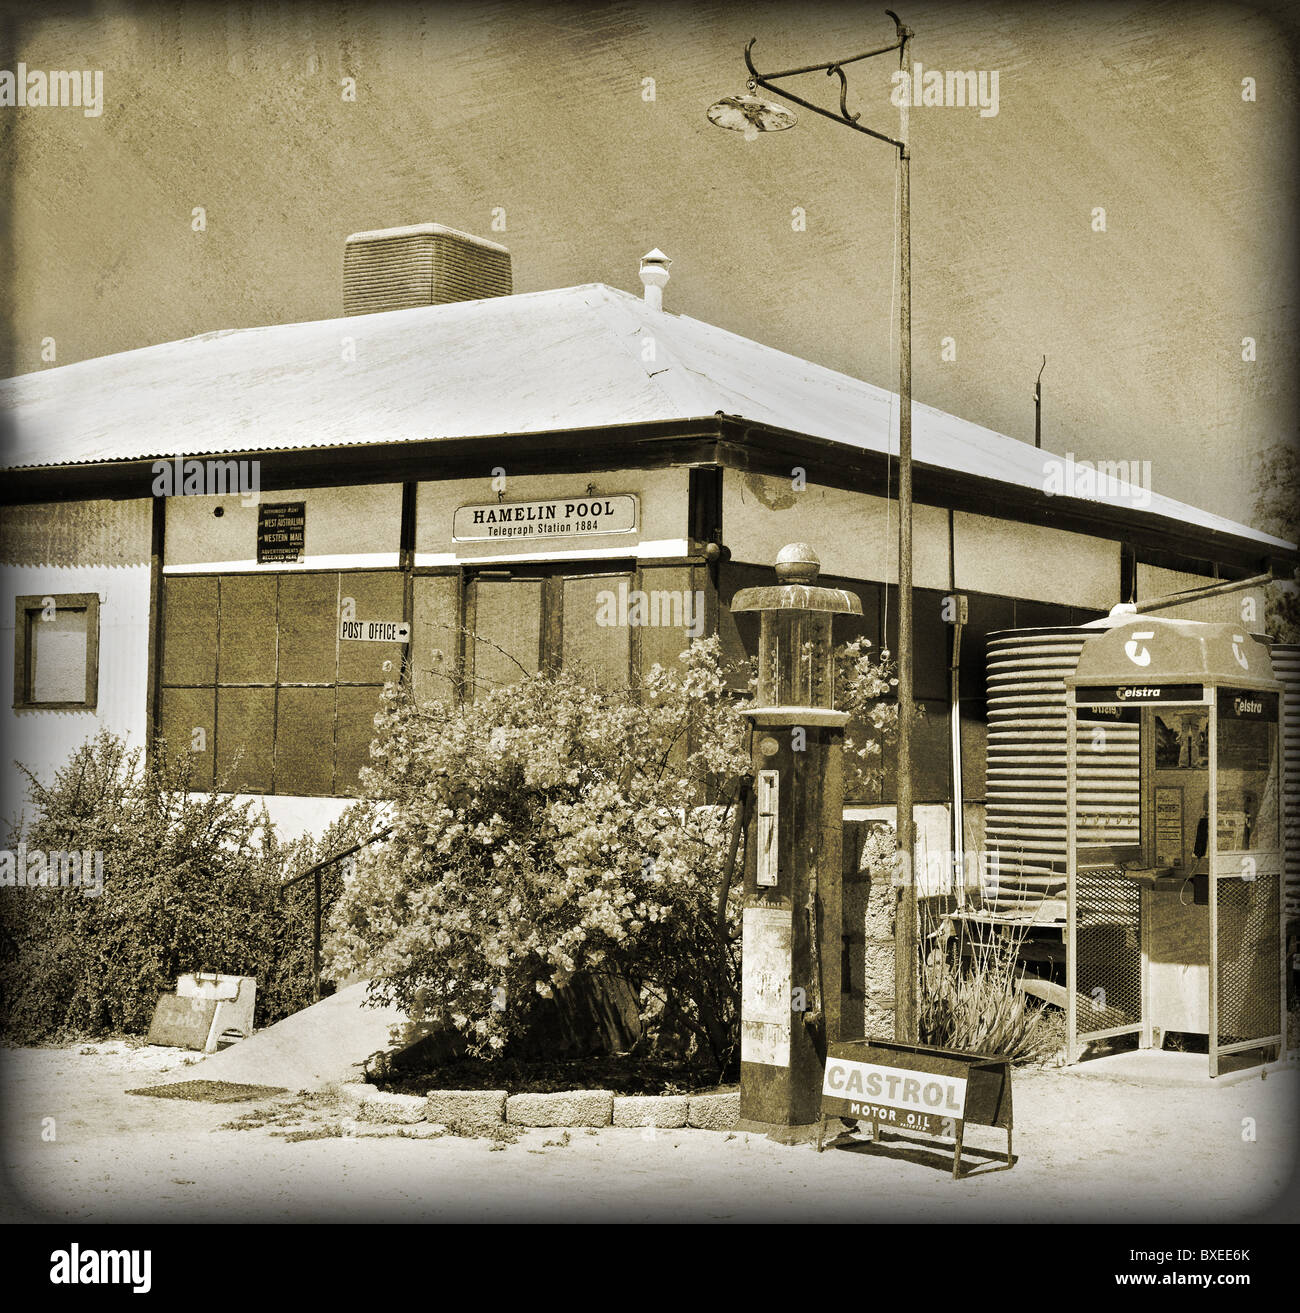 Hamelin Pool telegraph station in Western Australia - Stock Image